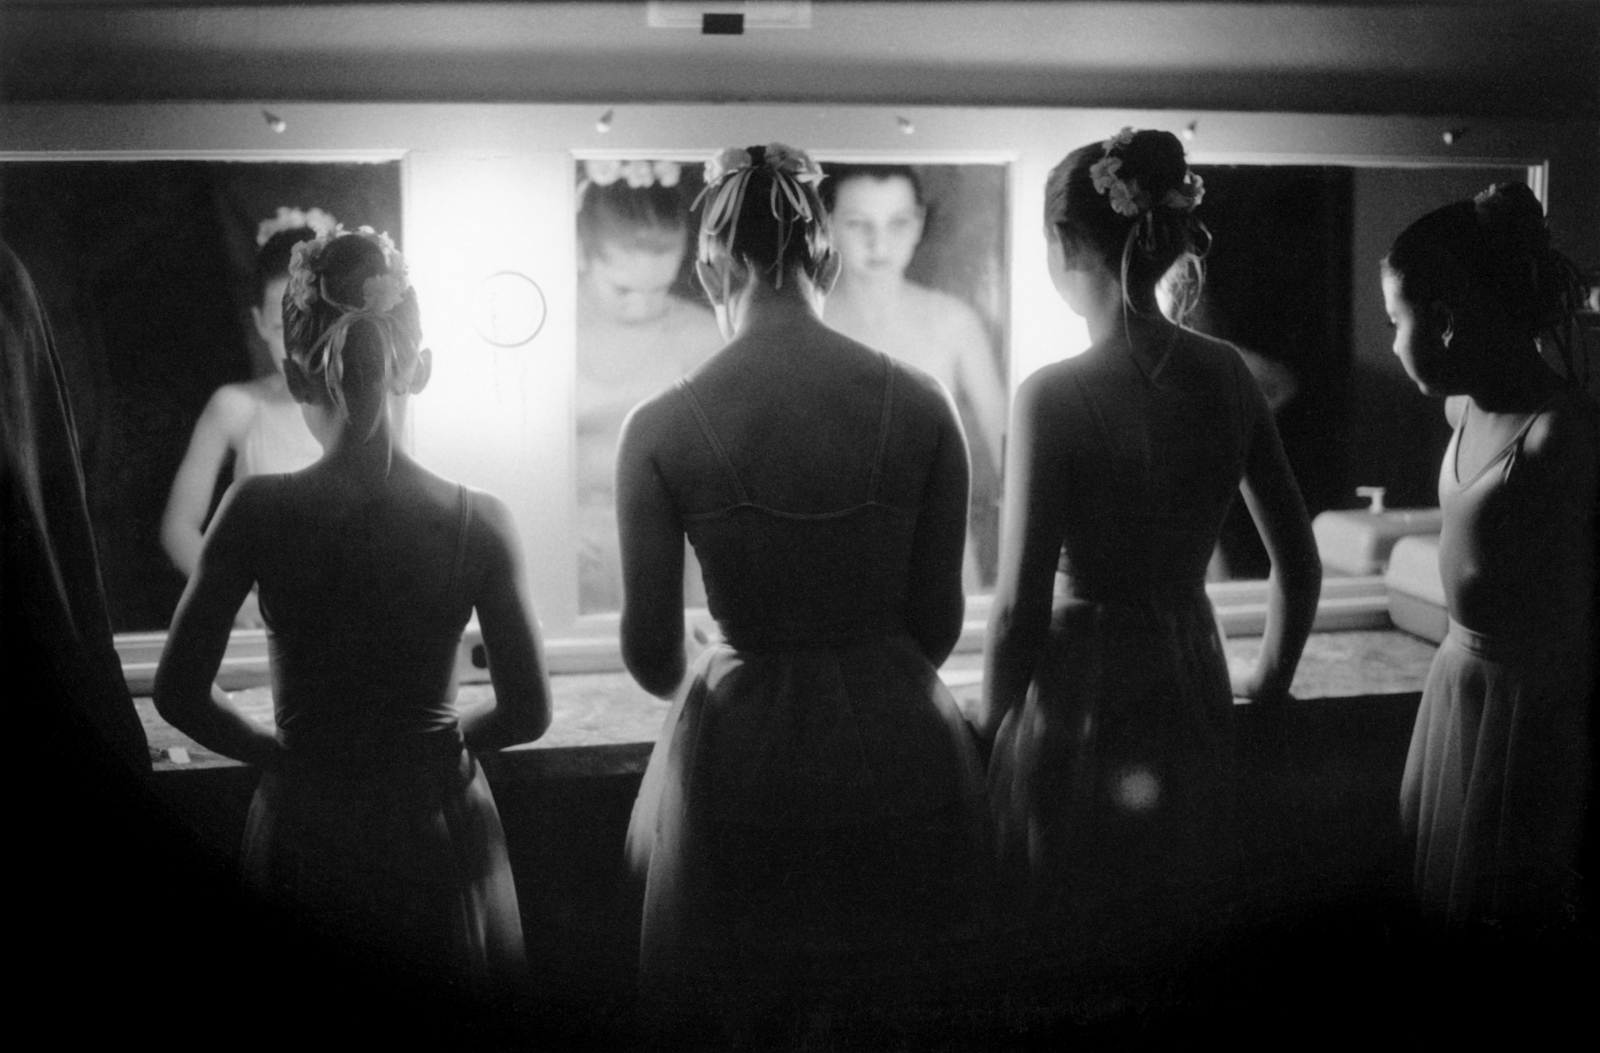 Dancers in the Mirror